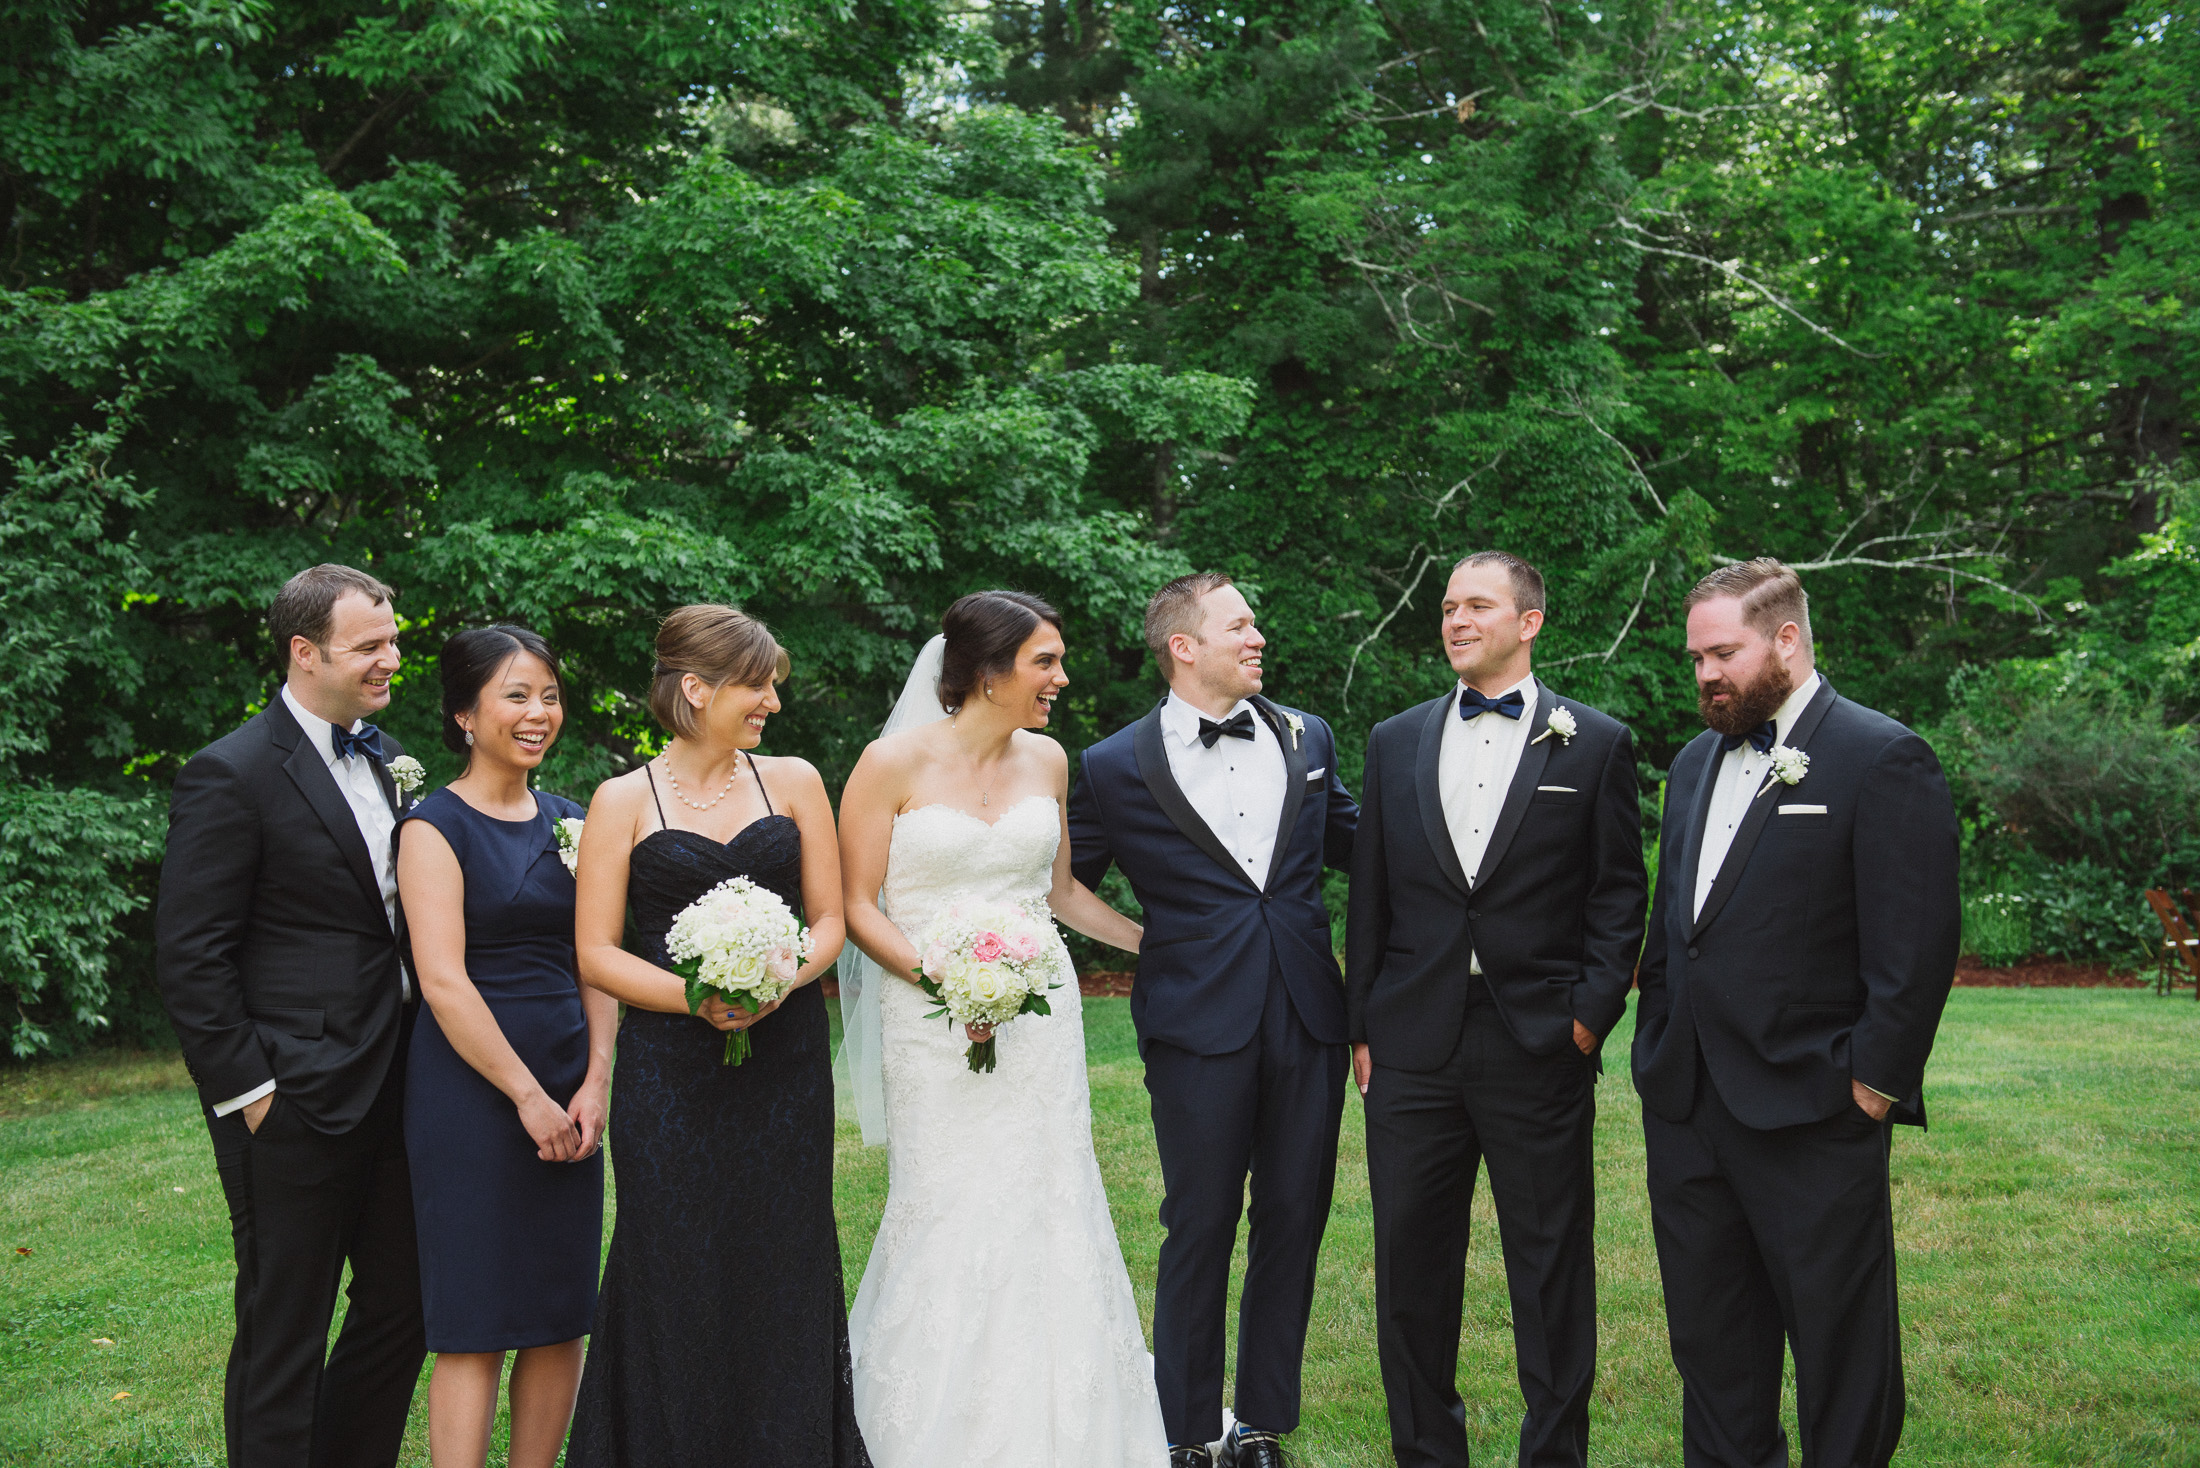 NH Wedding Photography: bridal party laughing